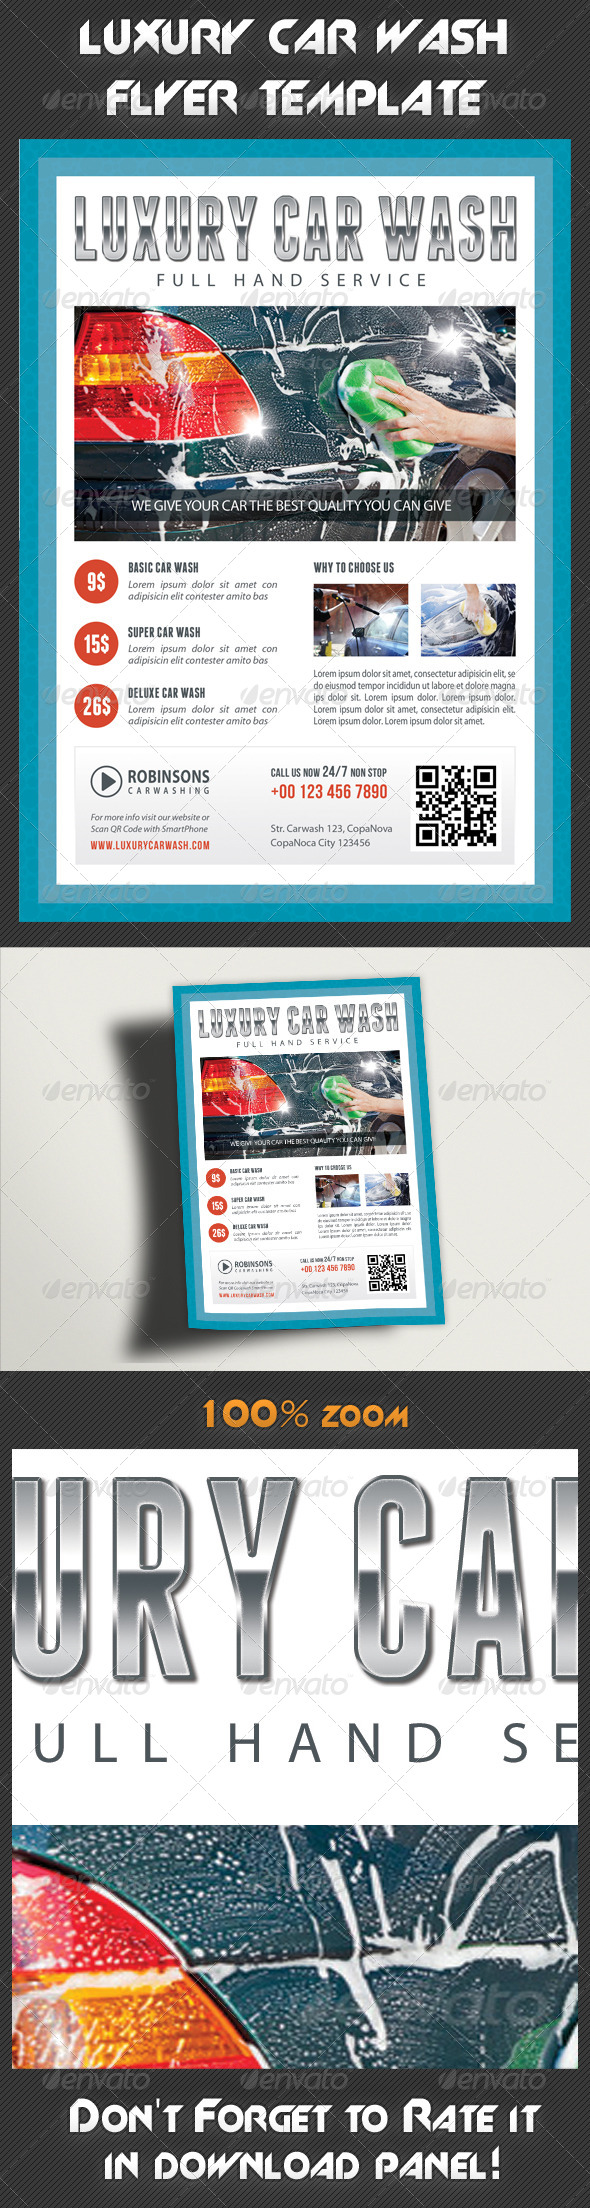 Car Wash Flyer 02 - Commerce Flyers